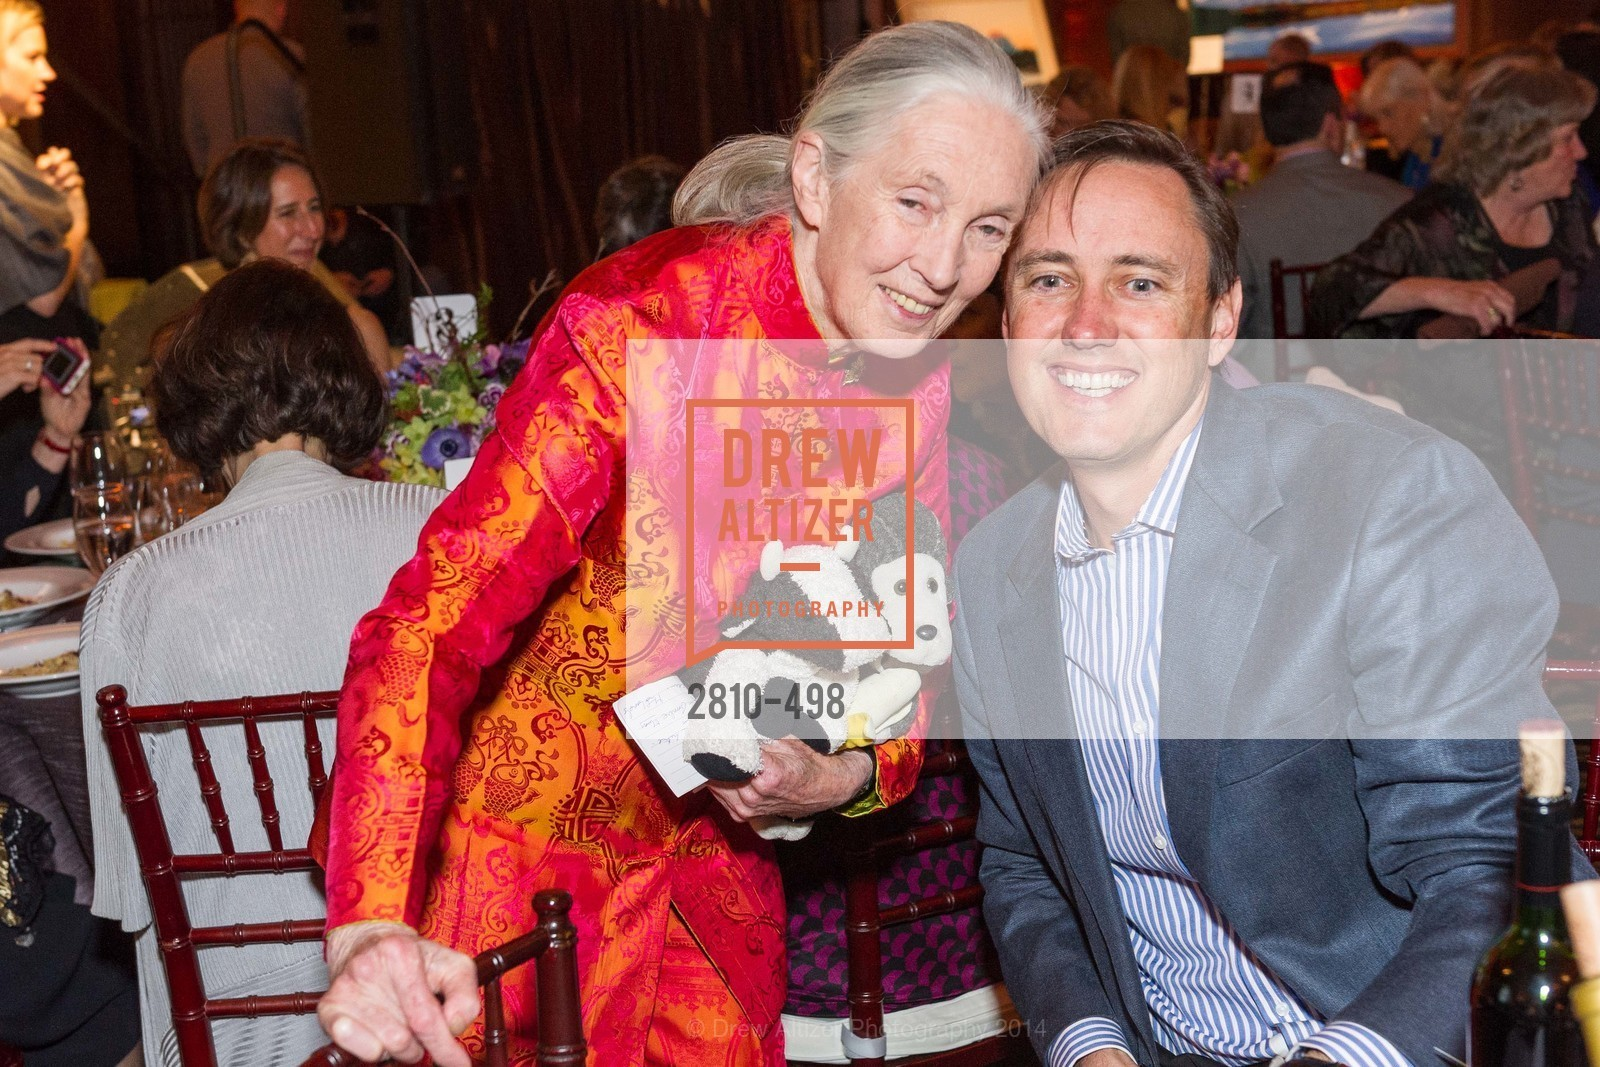 Top Picks, Dr. Jane Goodall 80th Birthday Celebration, April 3rd, 2014, Photo,Drew Altizer, Drew Altizer Photography, full-service agency, private events, San Francisco photographer, photographer california